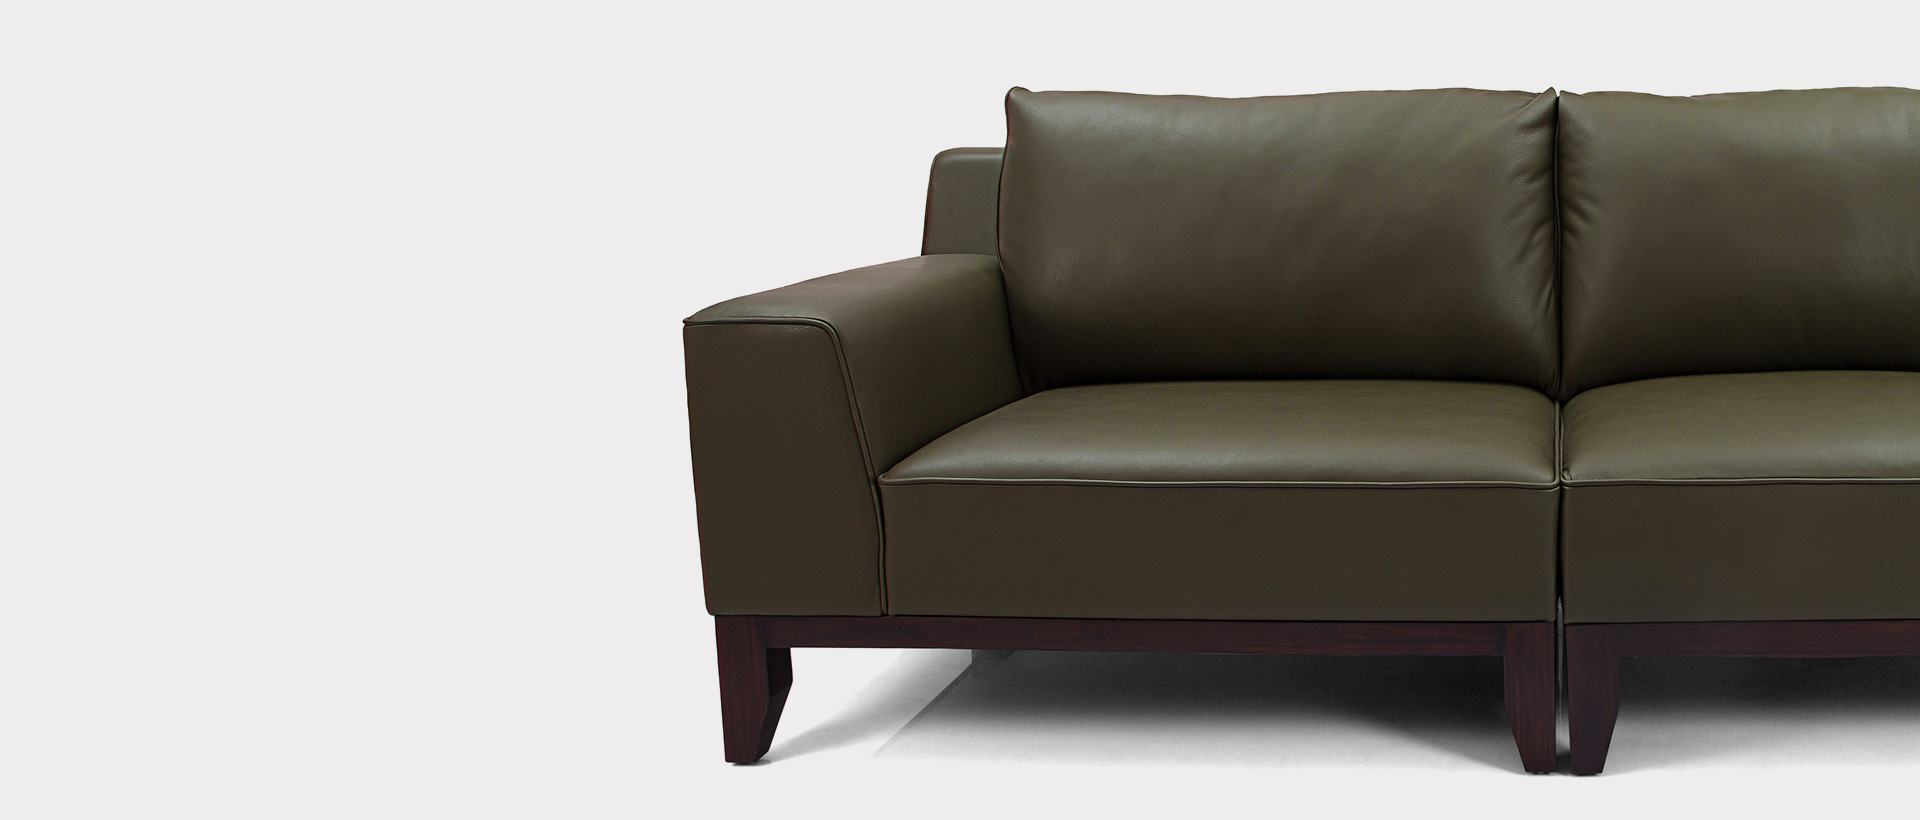 Karlsson Leather Recliner Sofa Buy Leather Sofas Online In India